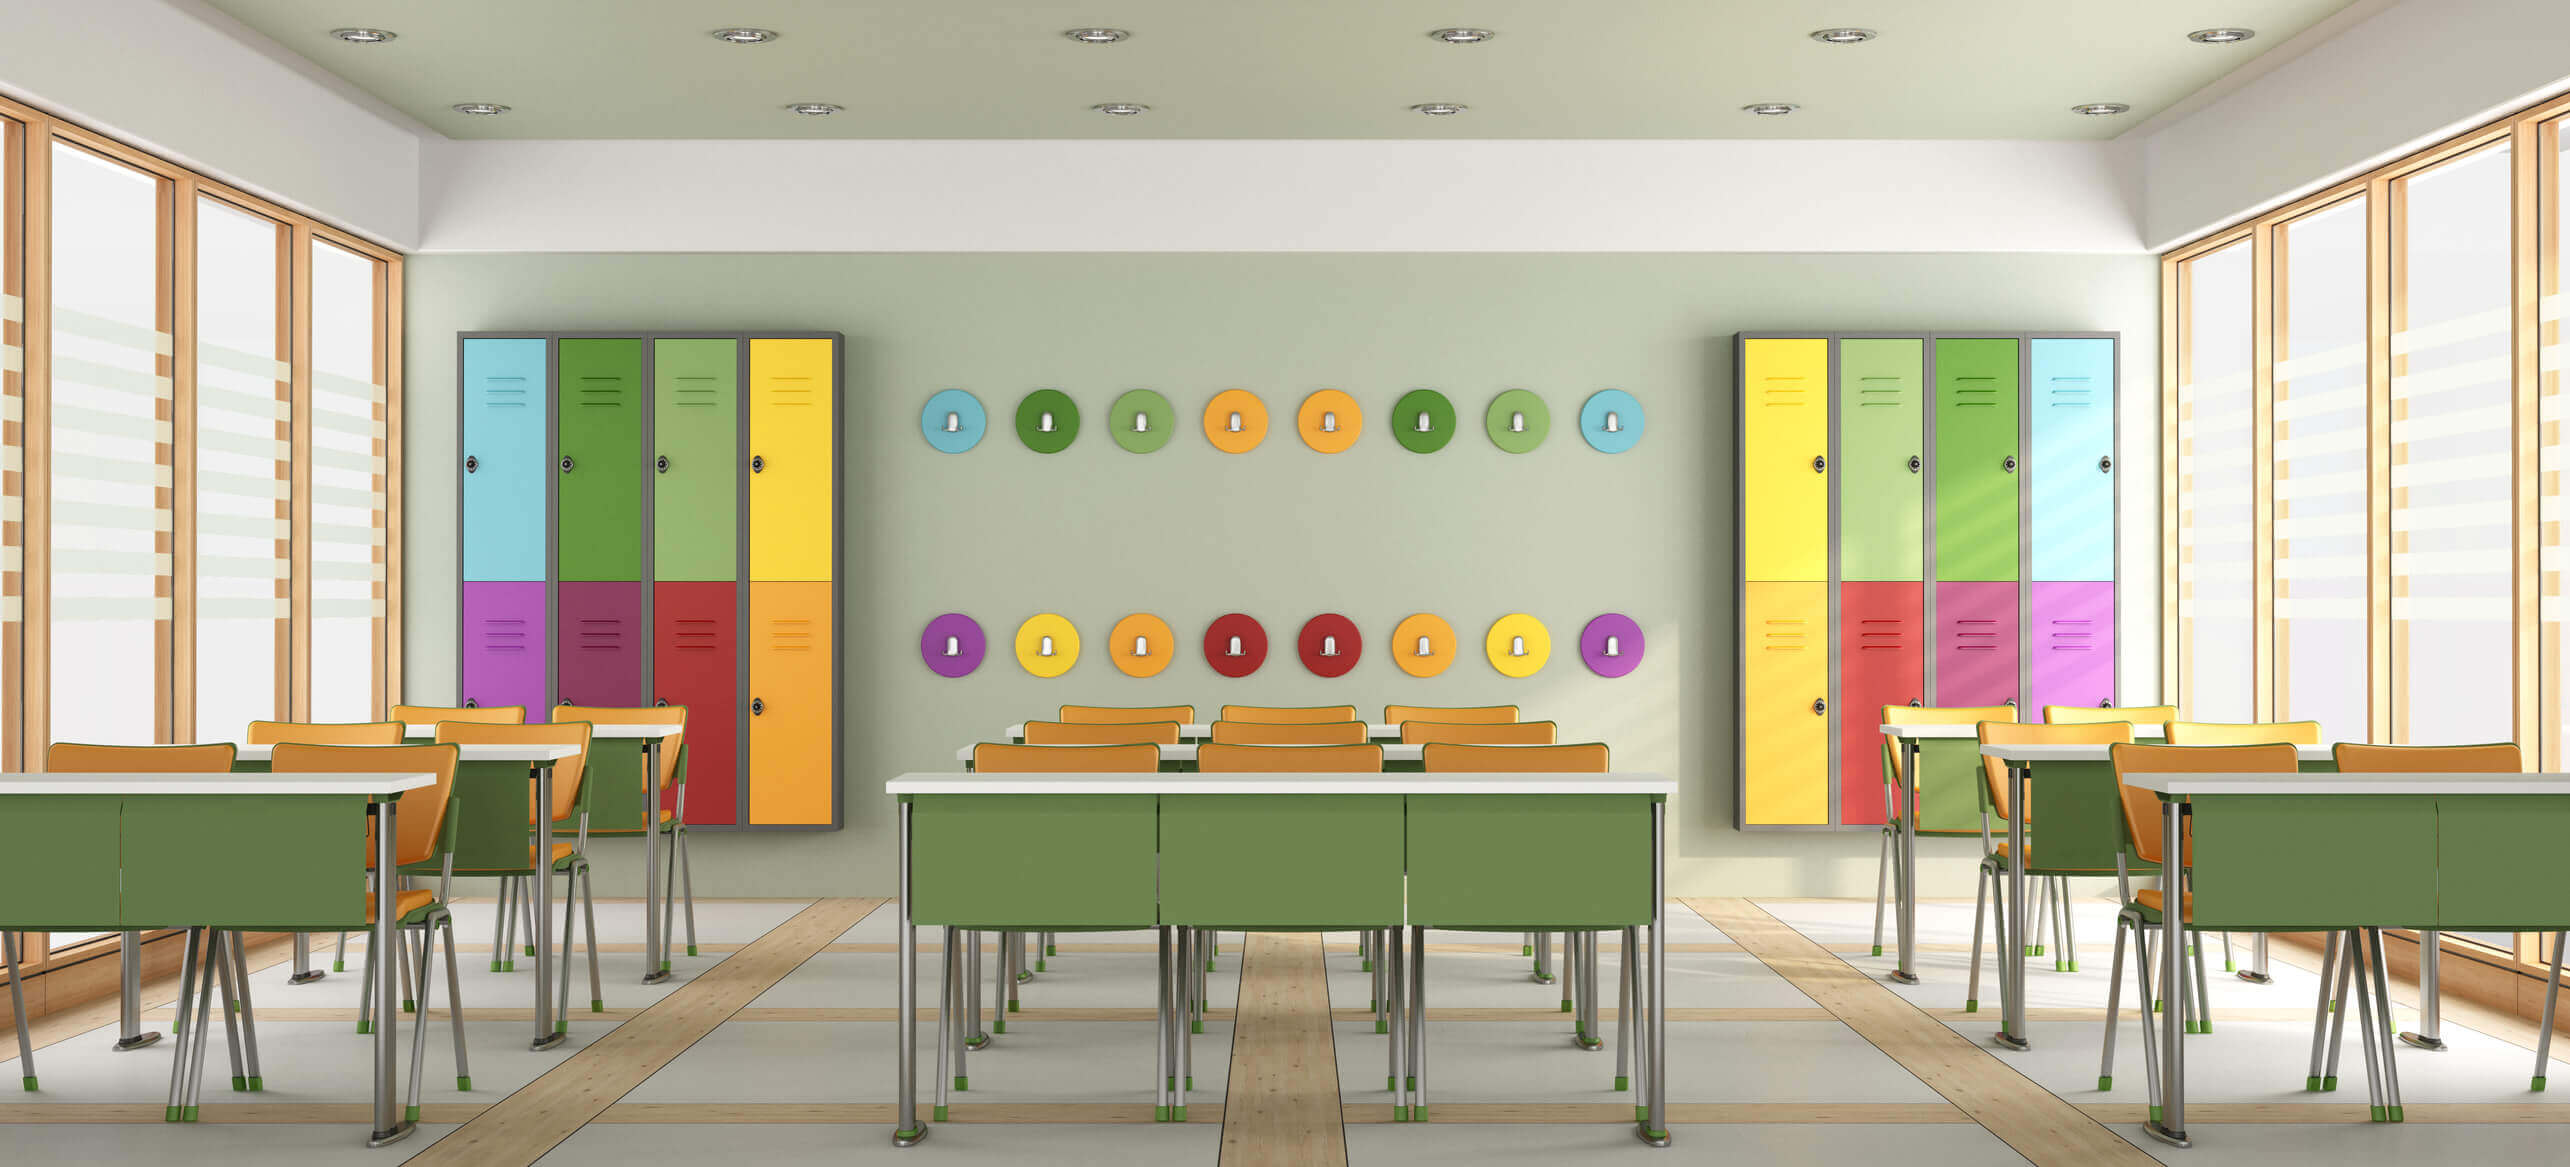 active learning environments